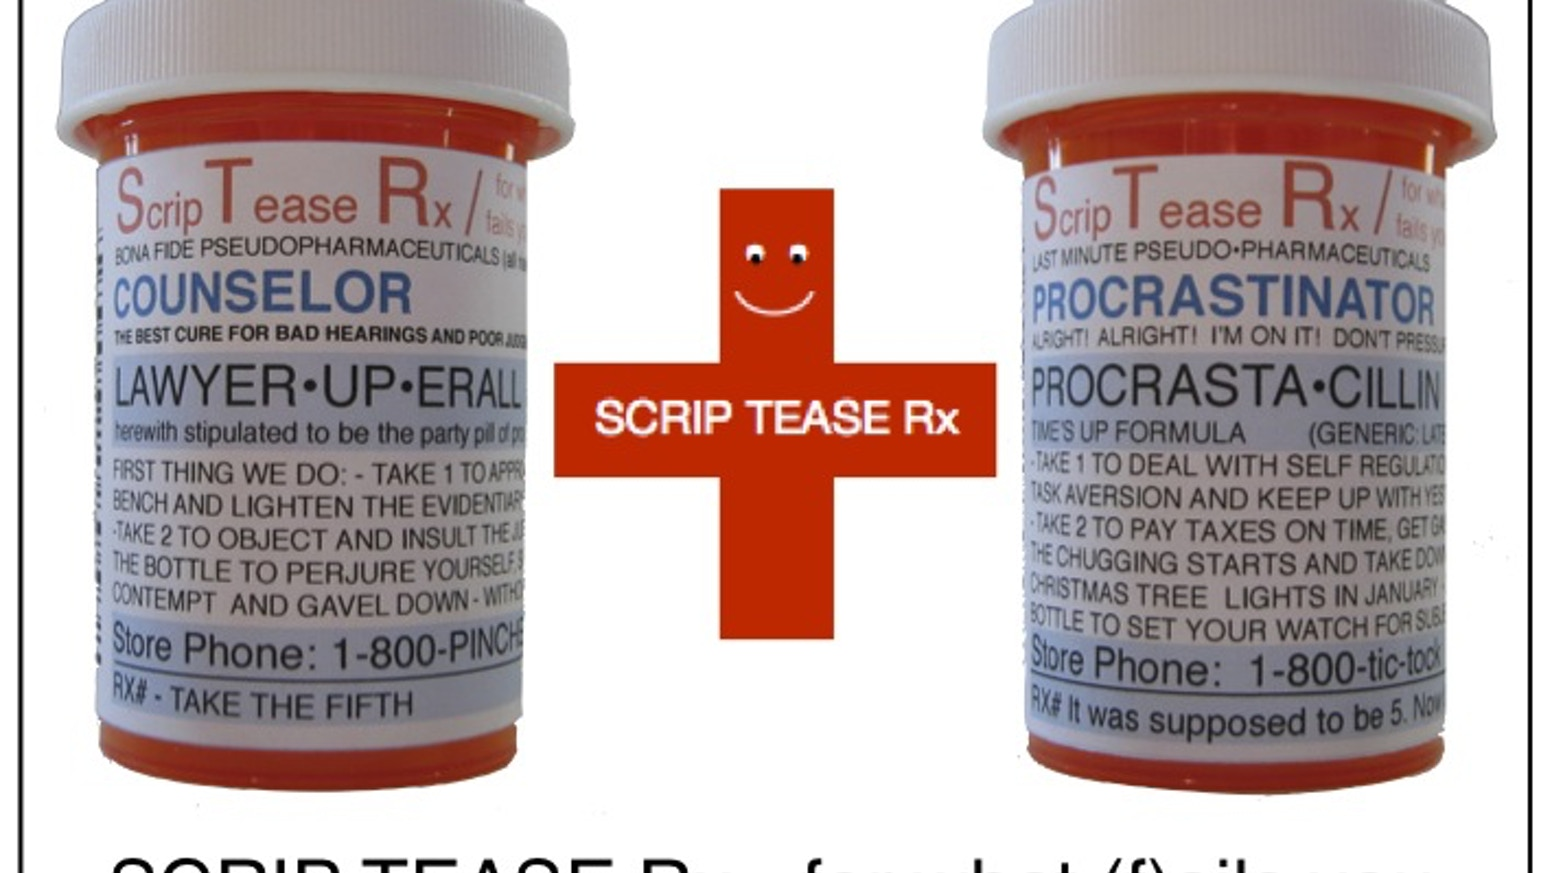 Funny Personalized Fake Prescriptions For Modern Life By